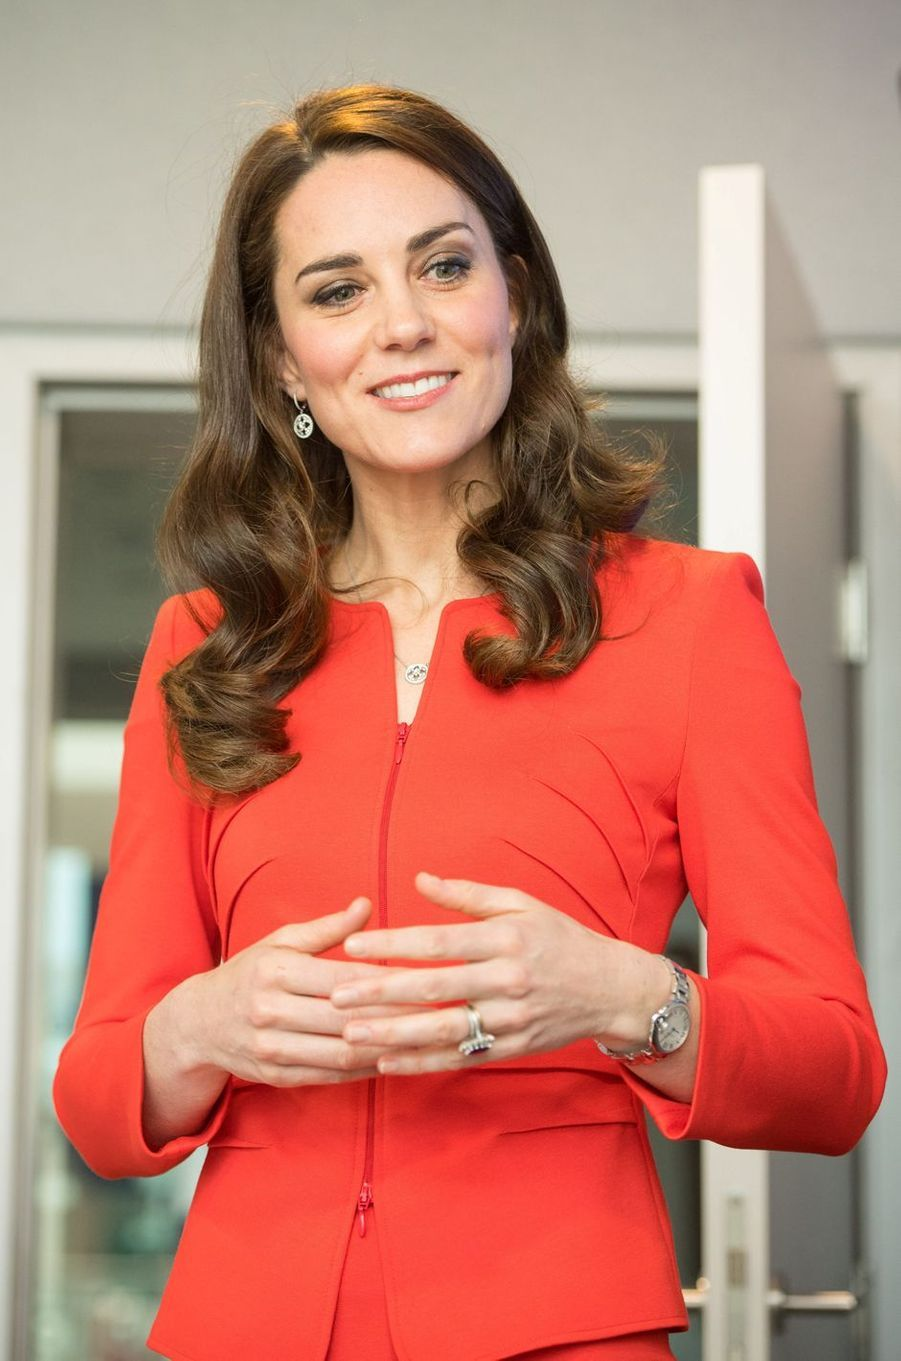 La duchesse de Cambridge, née Kate Middleton, à Londres le 20 avril 2017